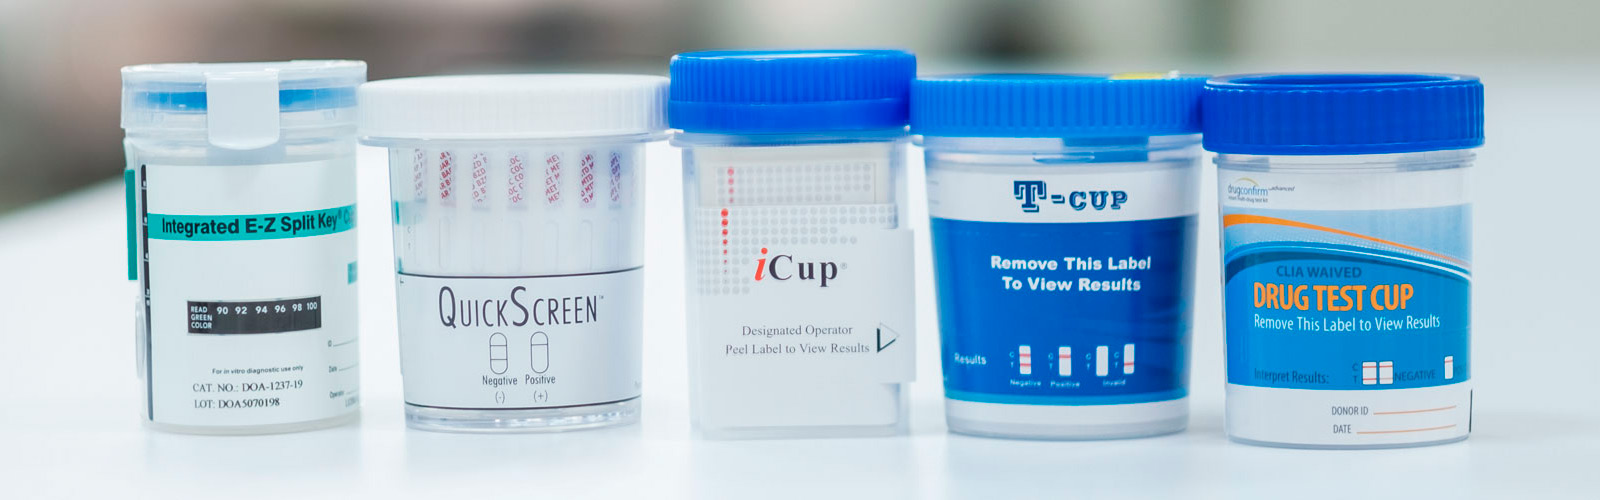 Urine Drug Test Cups